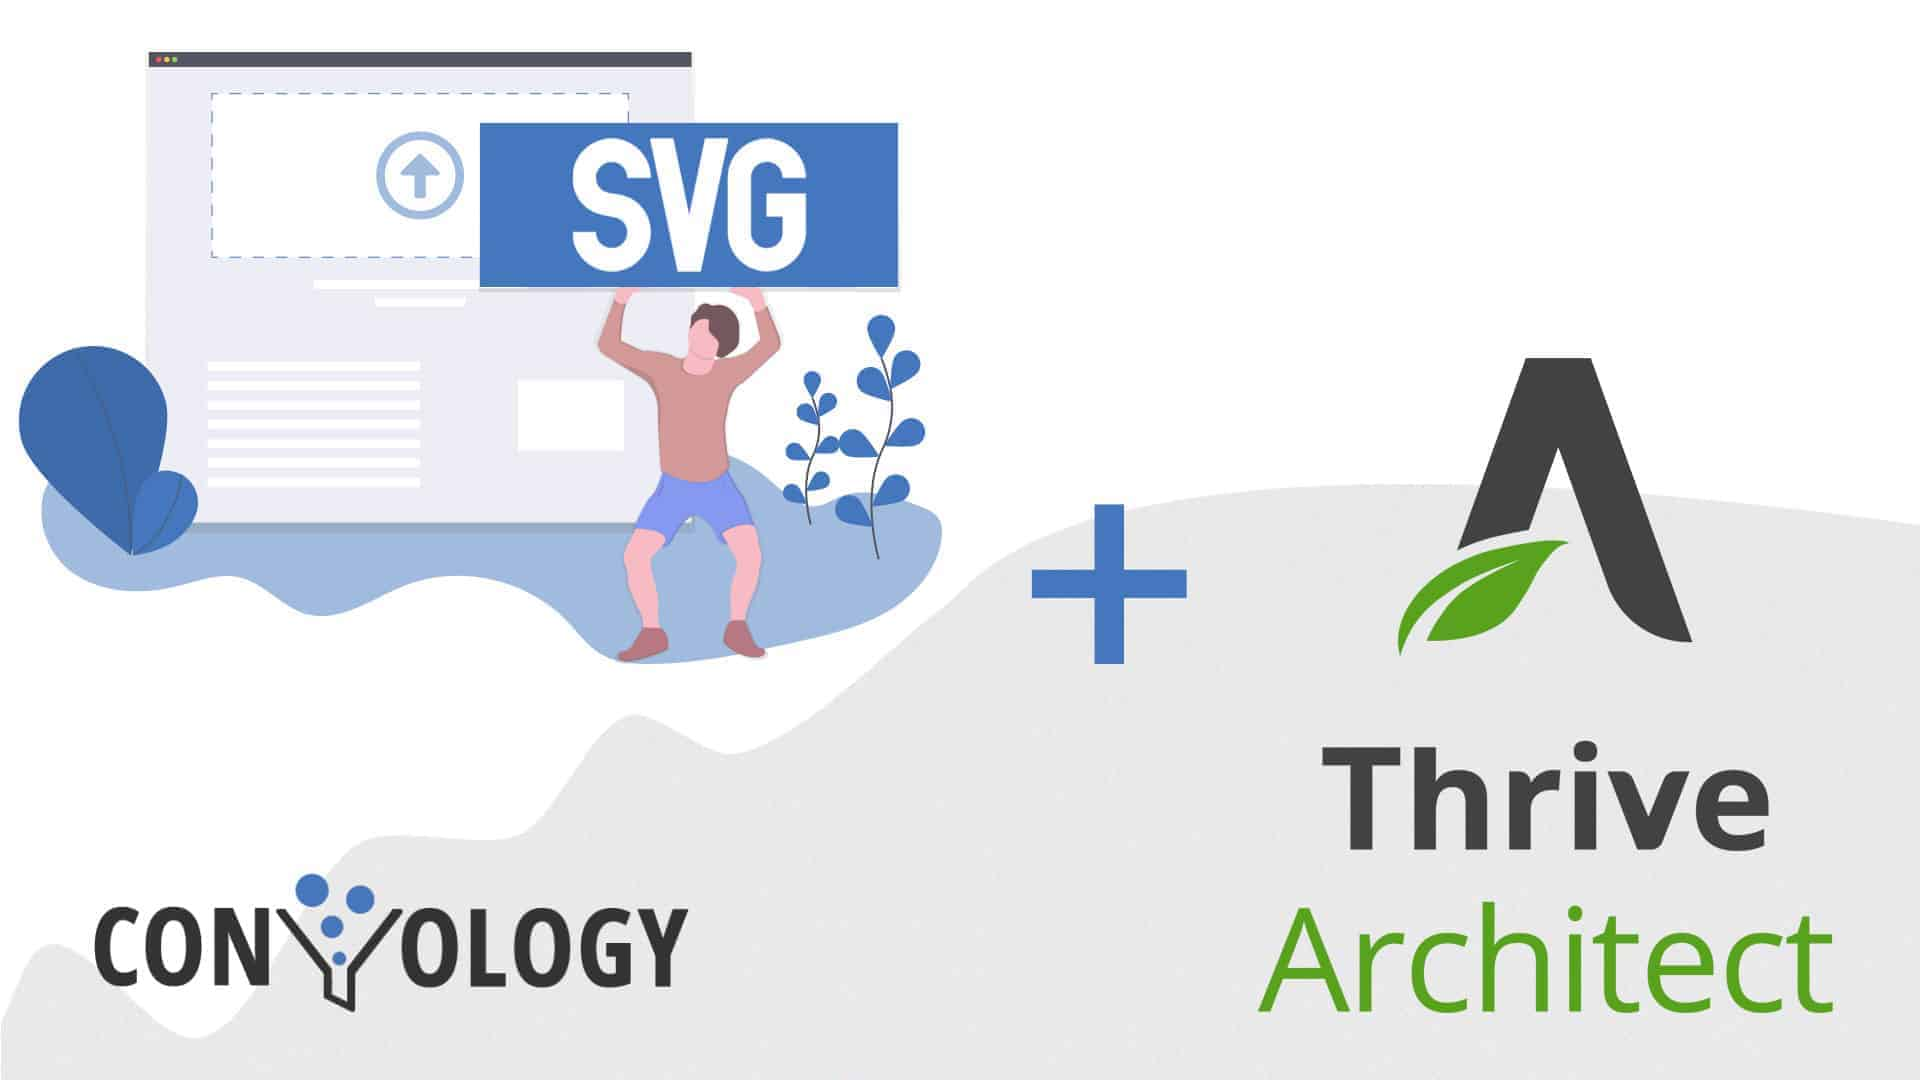 How to use SVG with Thrive Architect